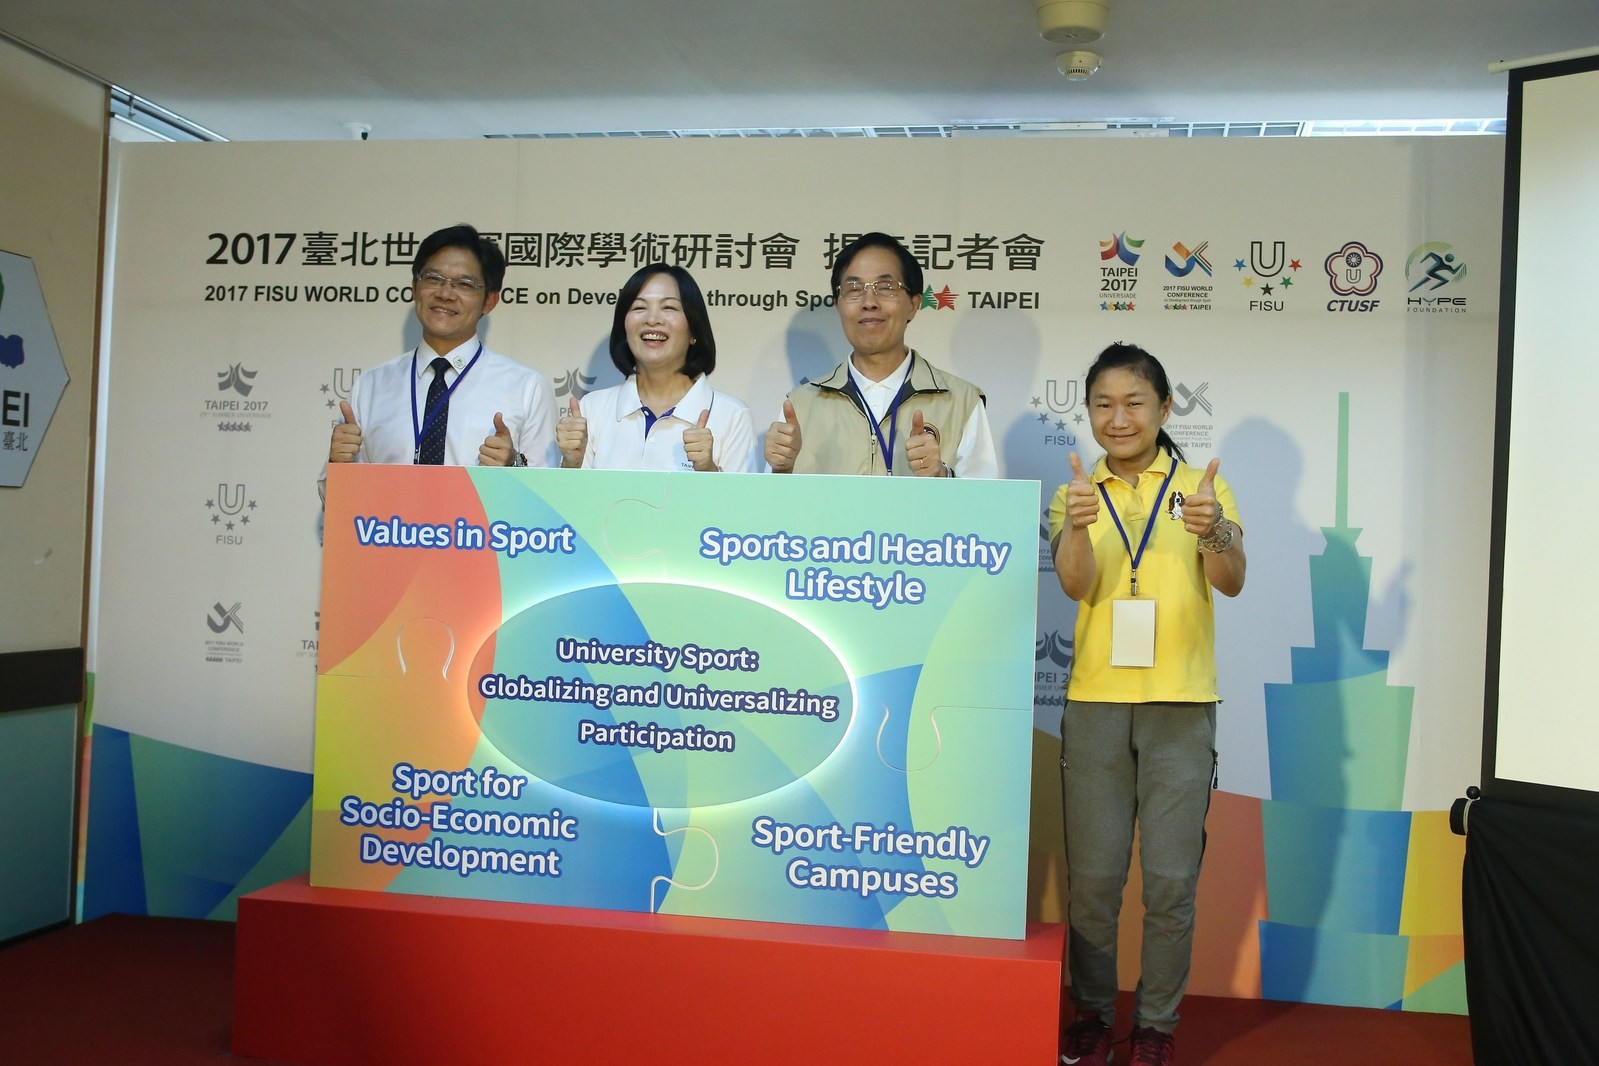 FISU and University of Taipei to hold sports innovation competition during Summer Universiade